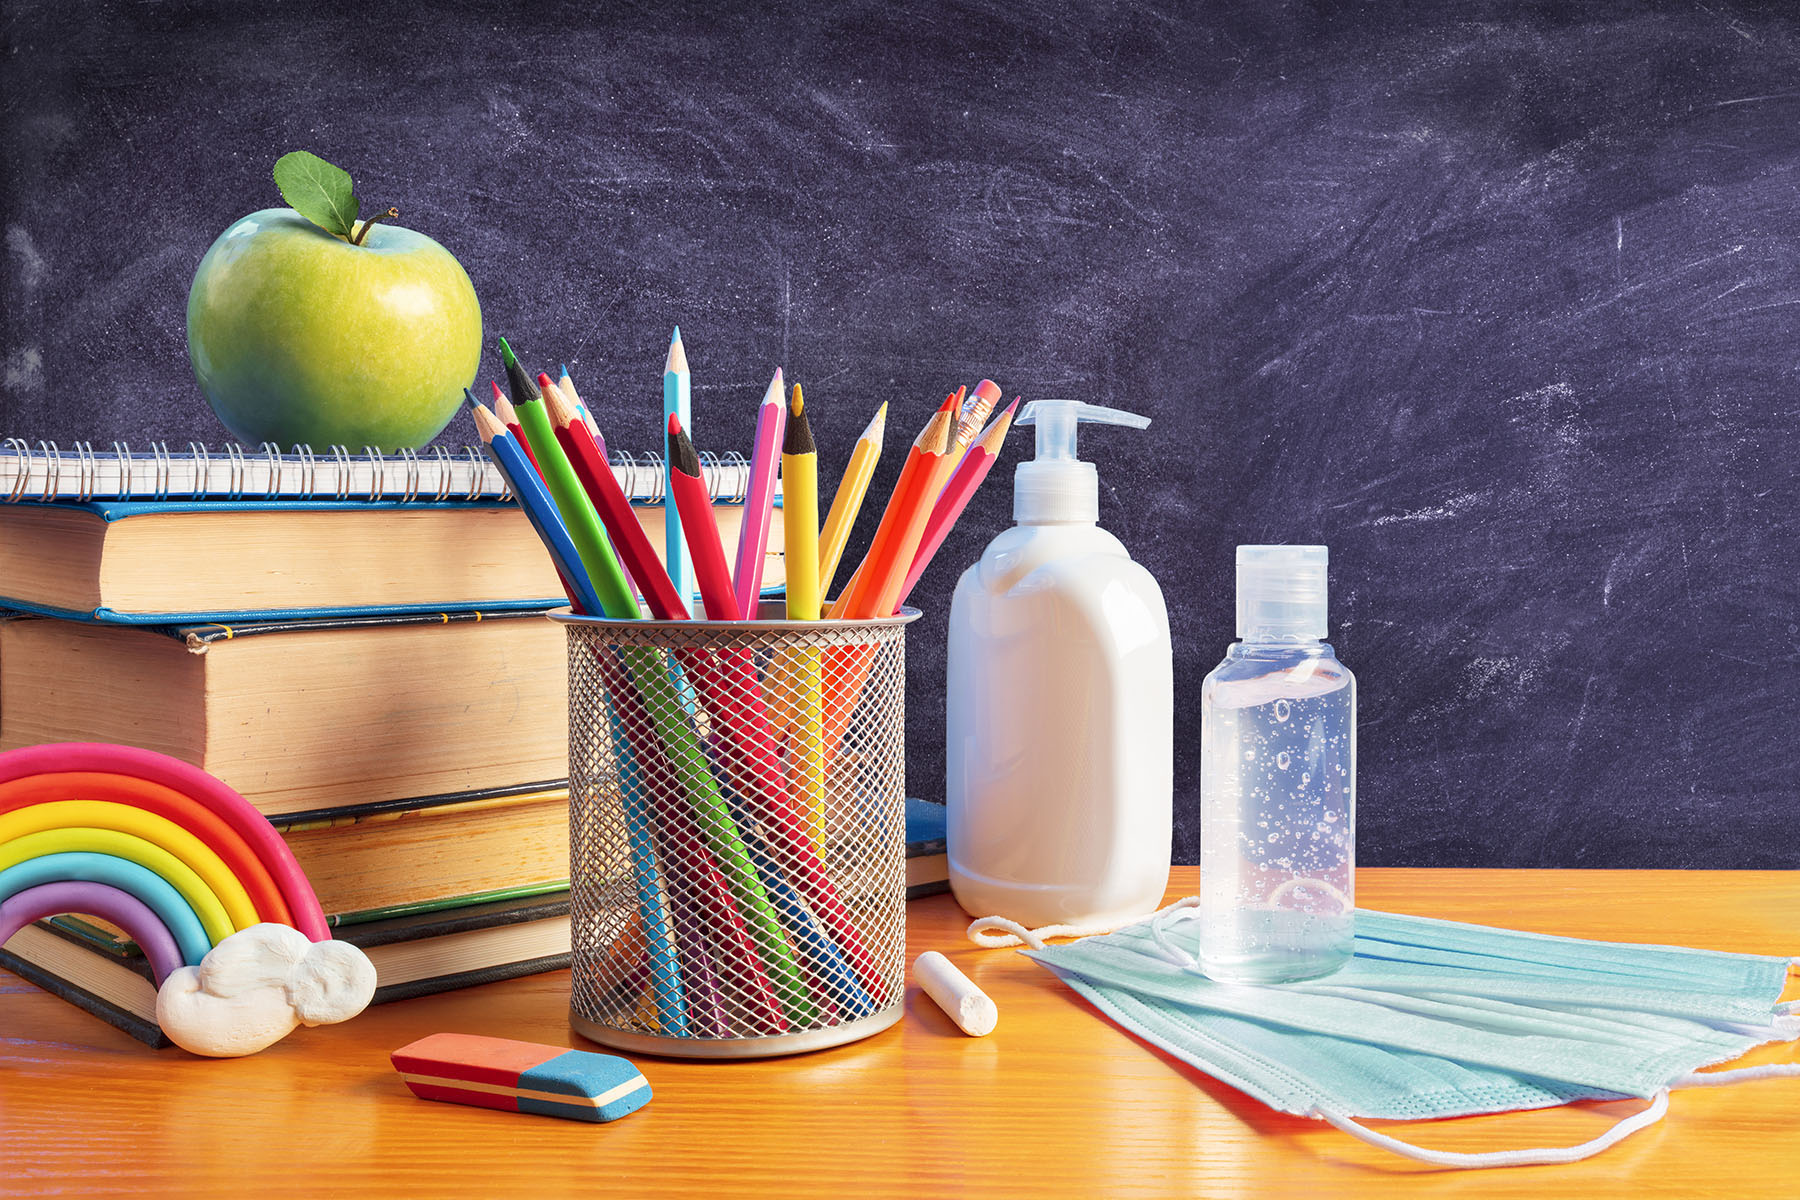 Back To School - Stationery With Covid-19 Protective Mask And Sa